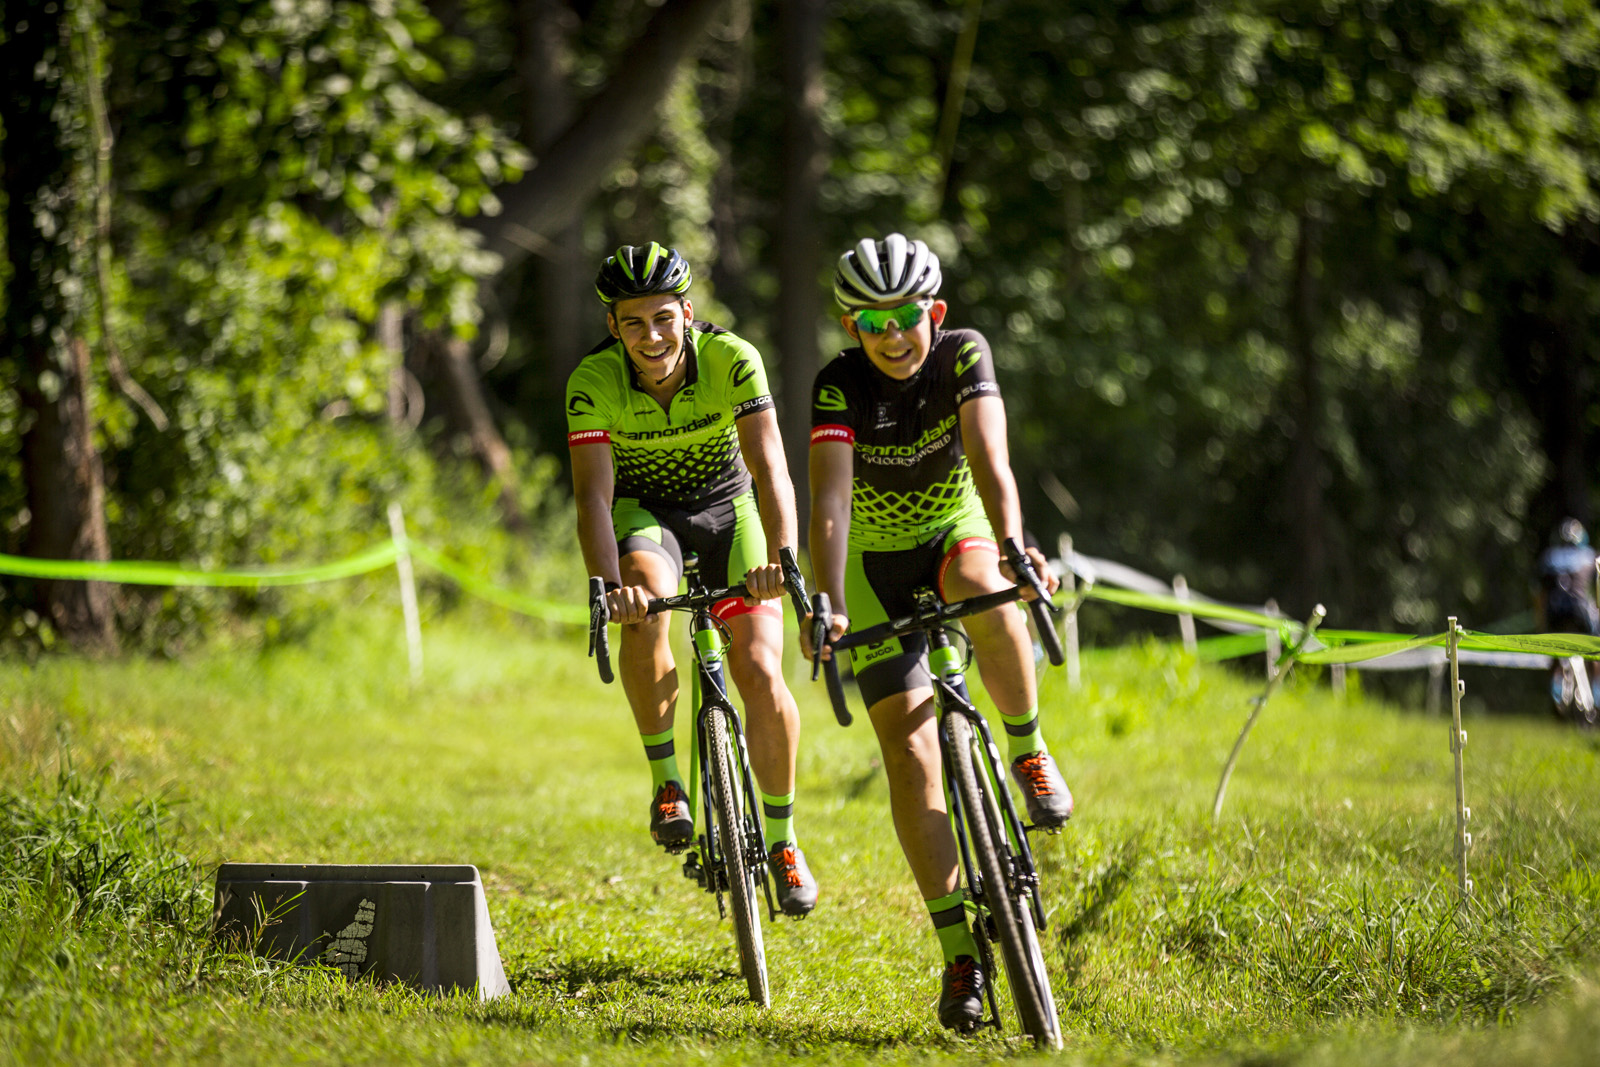 The team will be comprised of four pro riders:  Stephen Hyde:  2015 was his breakout year, climbing up to 15th in the world, beating the U.S. national champion twice at the Derby City 'Cross event and claiming the top American position at World Championsh